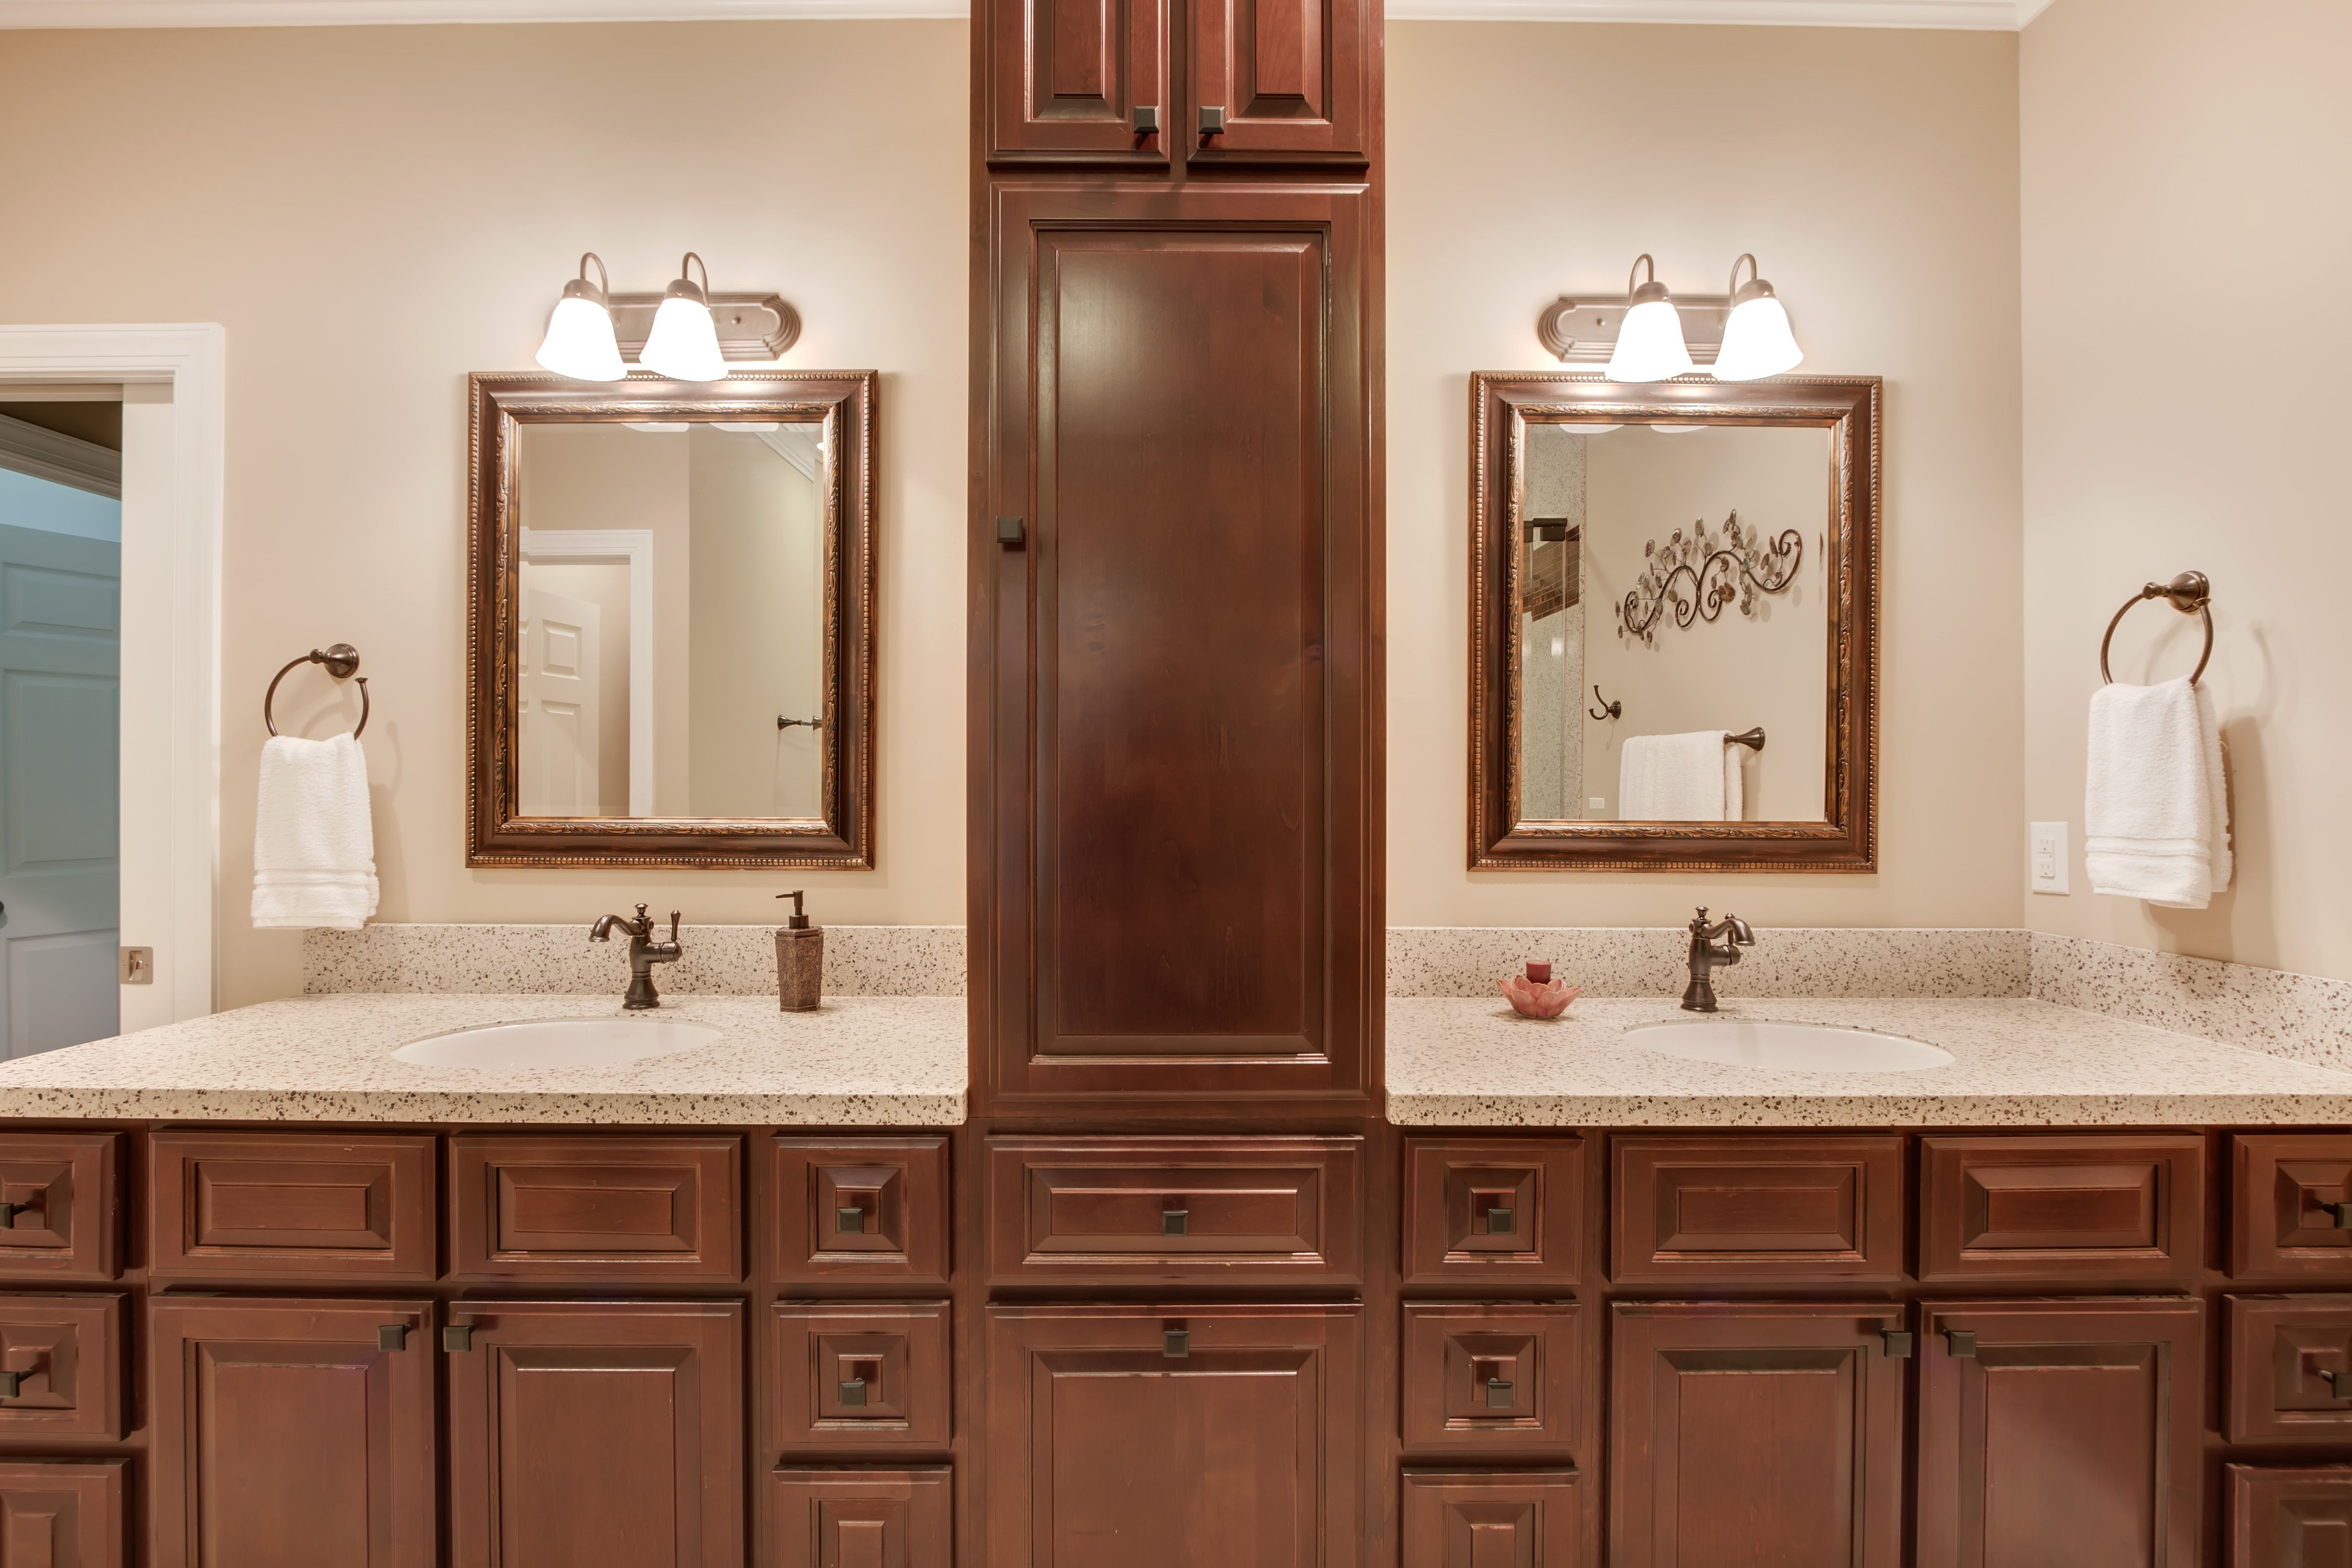 Bathroom Transformation Done By Granite Transformations Featuring A New Counter Top Bathroom Transformation Granite Vanity Countertops Countertops